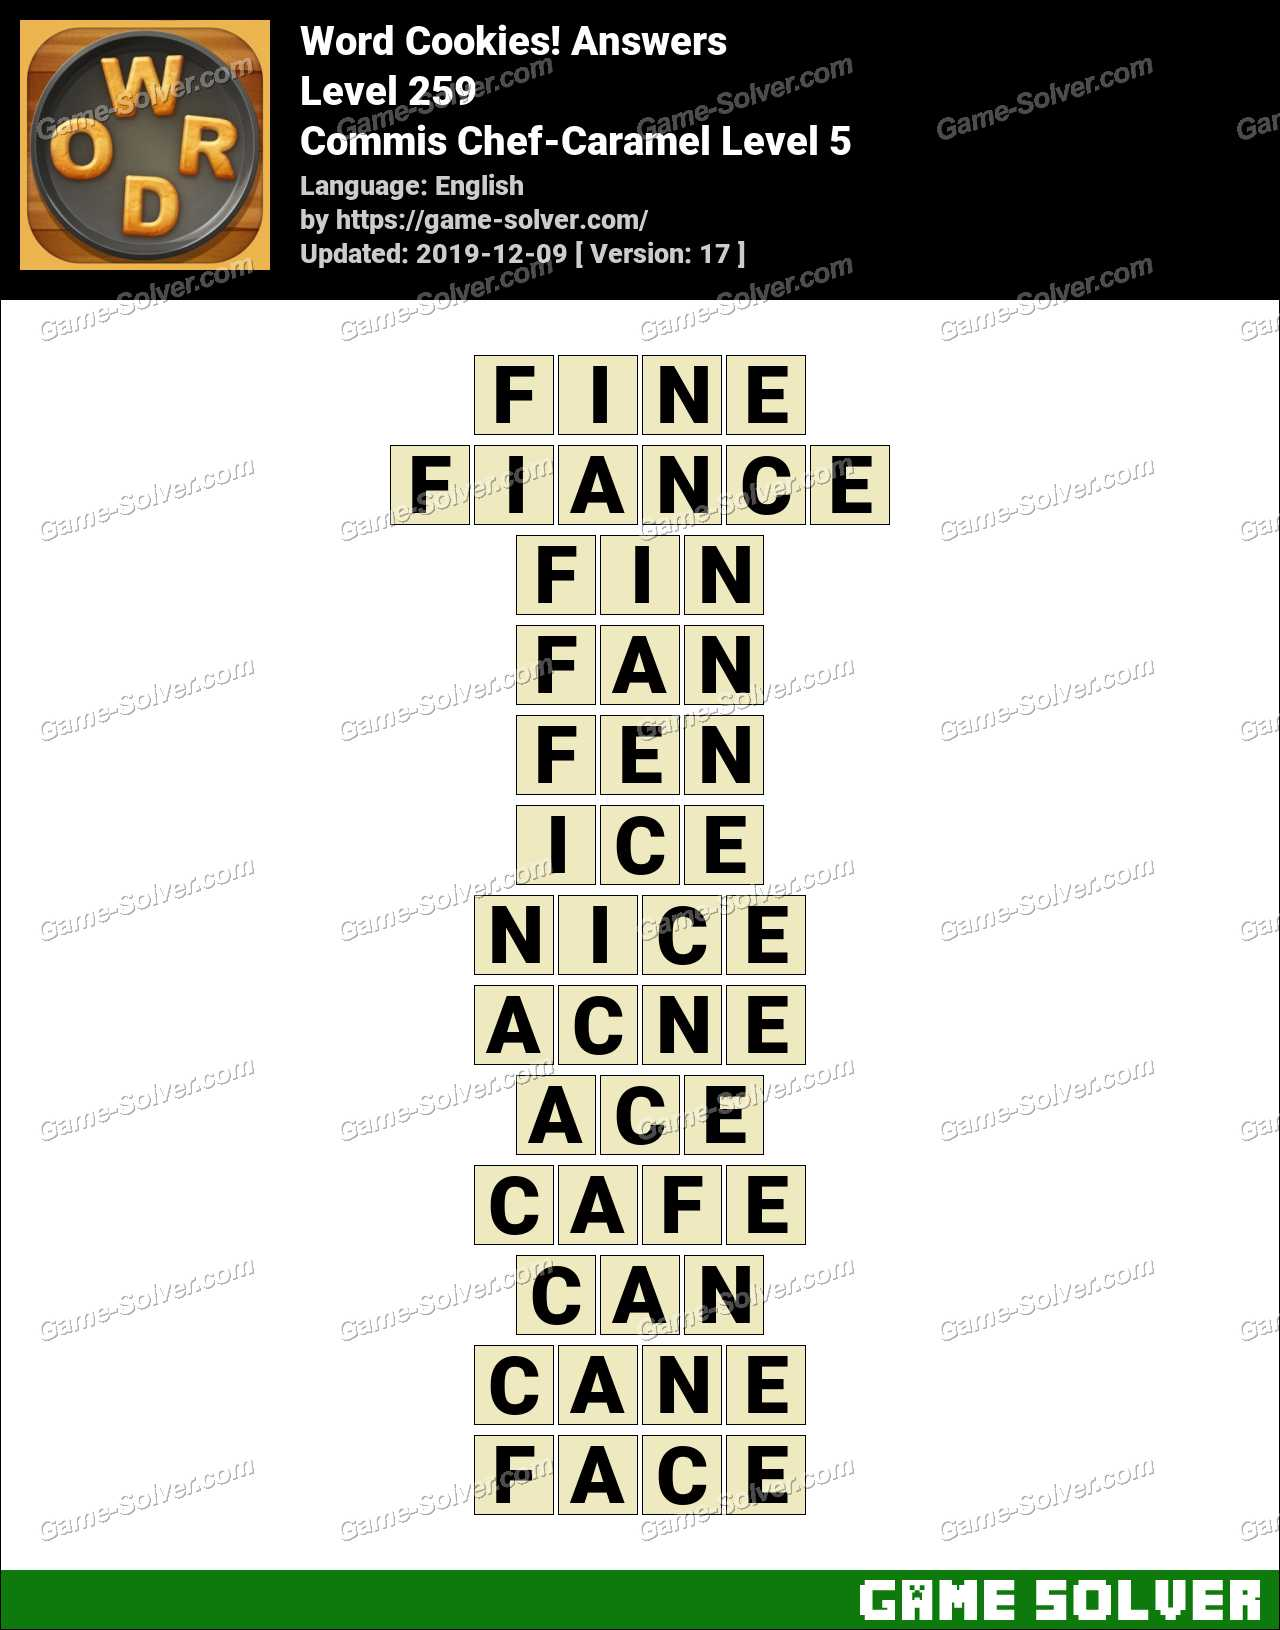 Word Cookies Commis Chef-Caramel Level 5 Answers